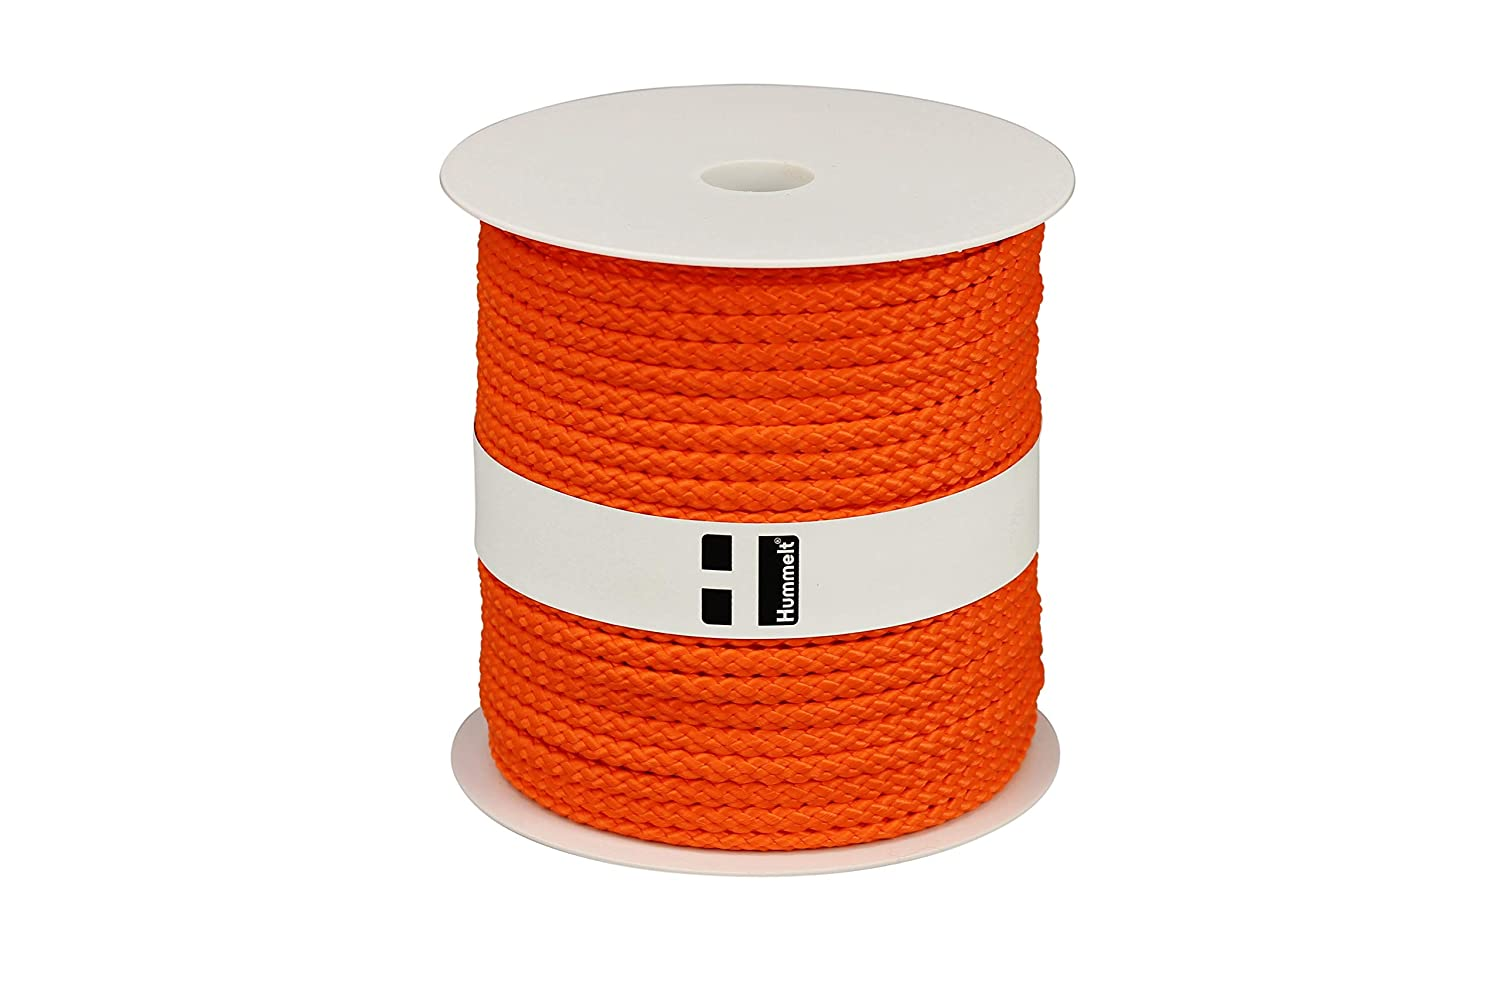 Hummelt/® SilverLine-Rope Universalseil Polypropylenseil 6mm 50m orange auf Rolle